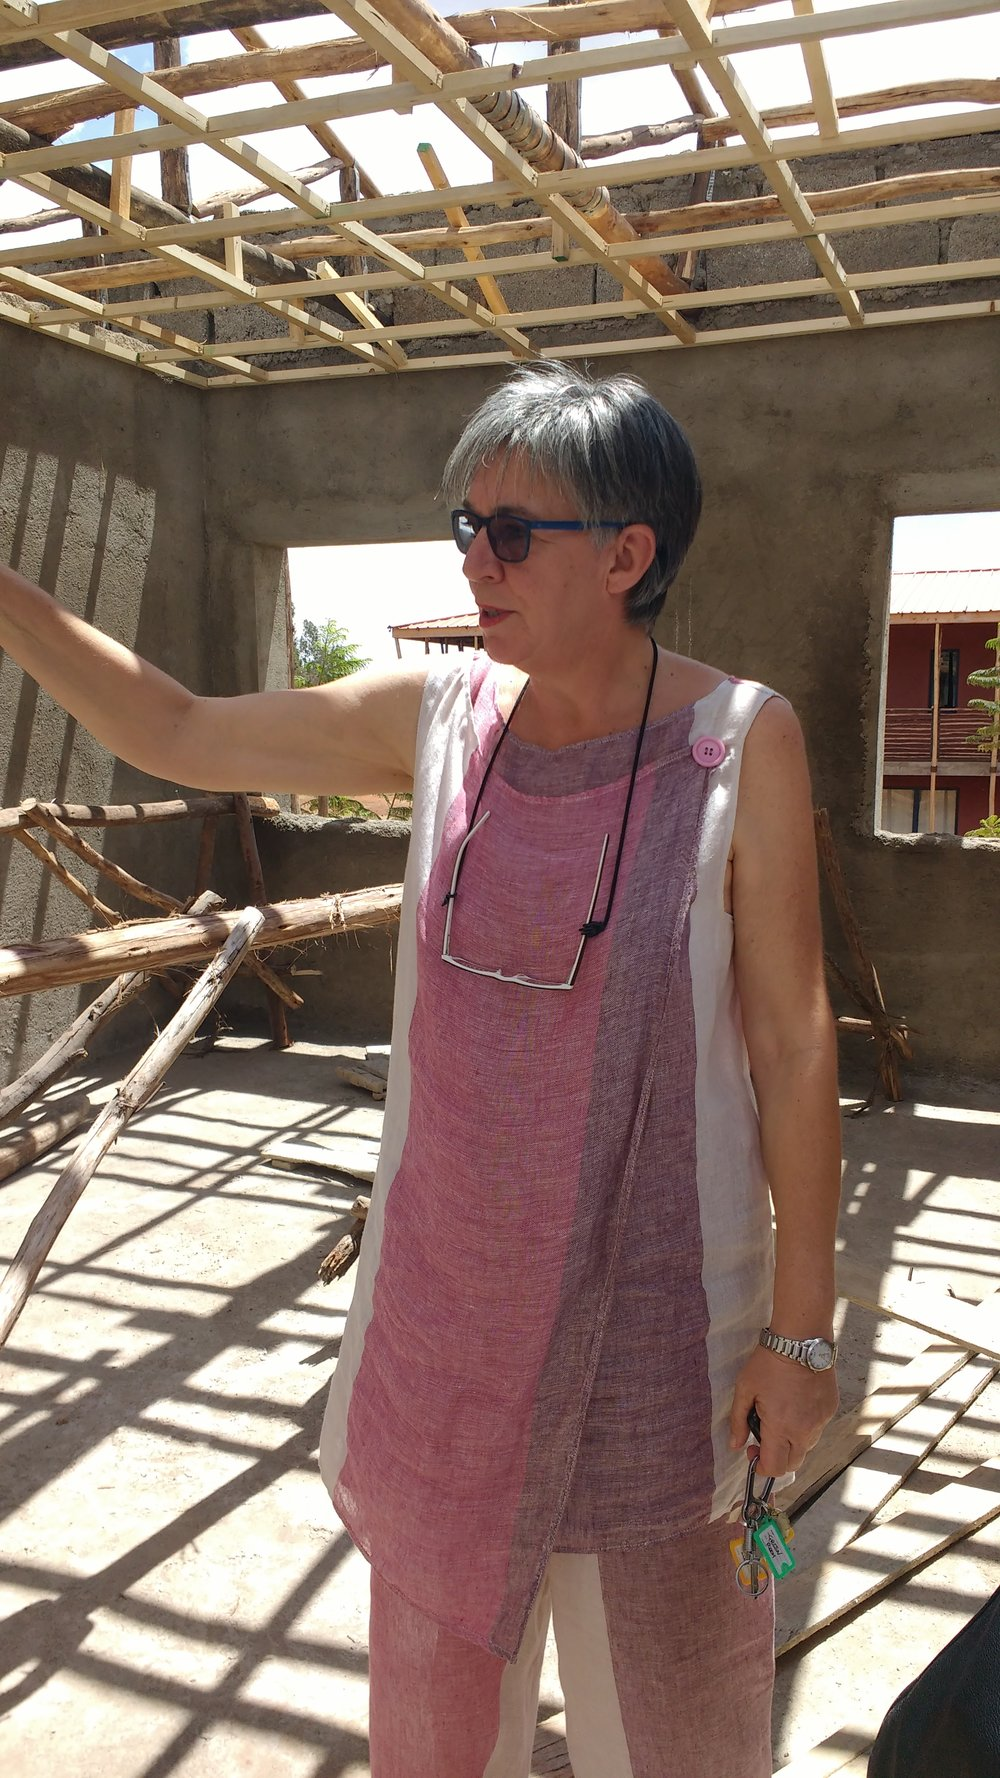 Marcella showed the MWAHFE team around a new space that's under renovation on the Busajo grounds. The team hopes to house and rehabilitate vulnerable women.